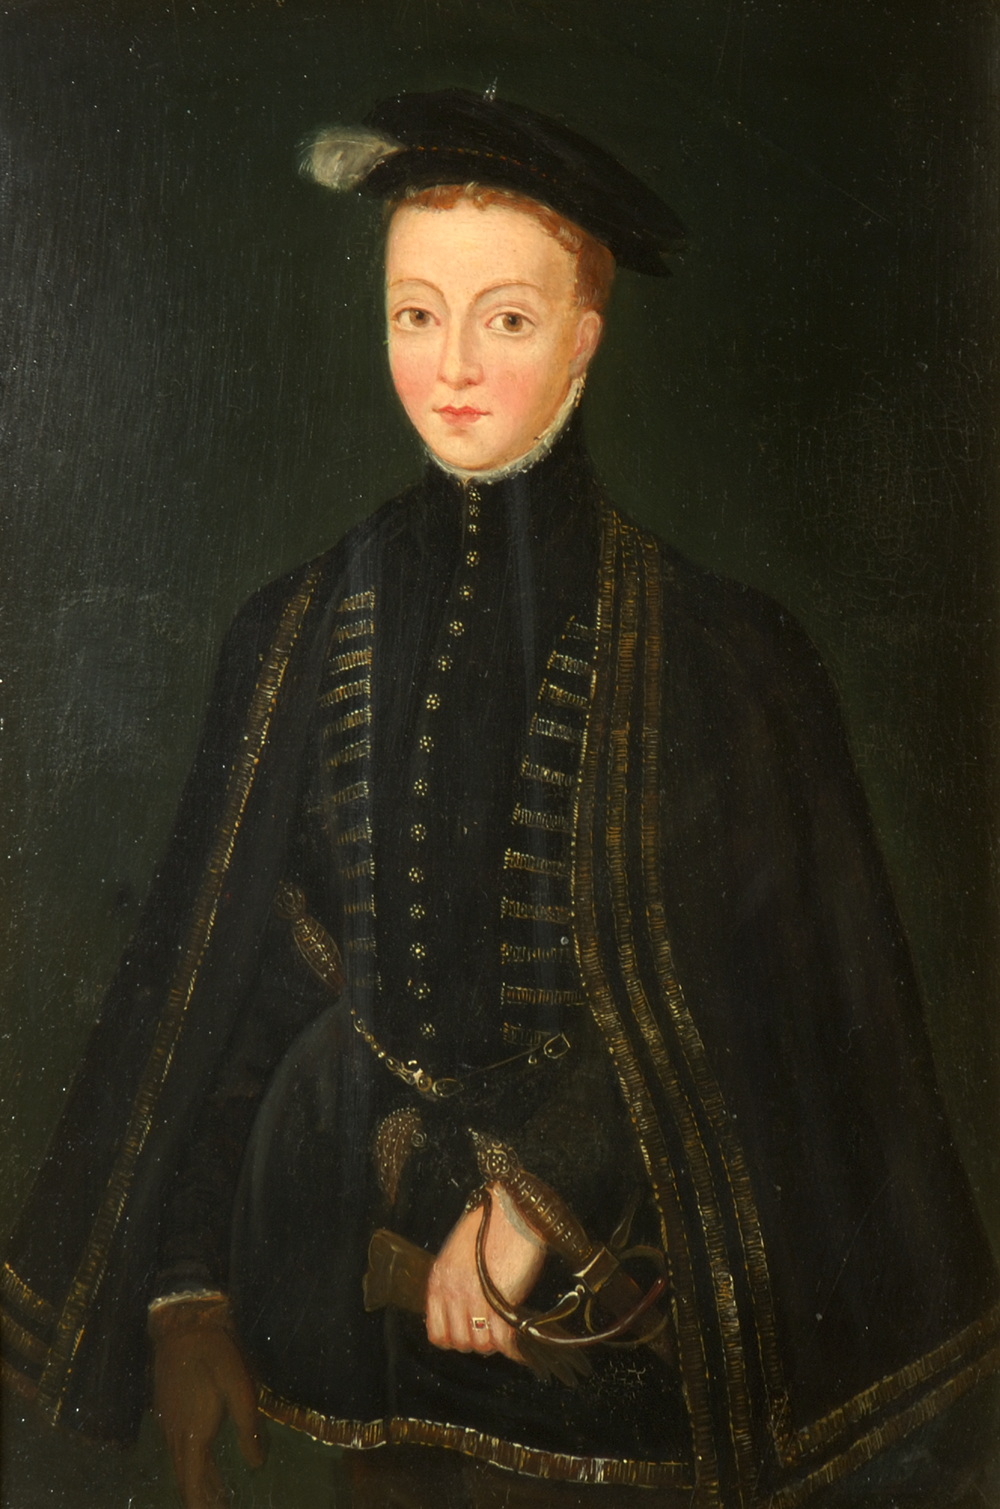 A portrait of a young Lord Darnley. He is dressed in a black and gold outfit with a black hat. he has short red hair and is wearing a sword at his waist.